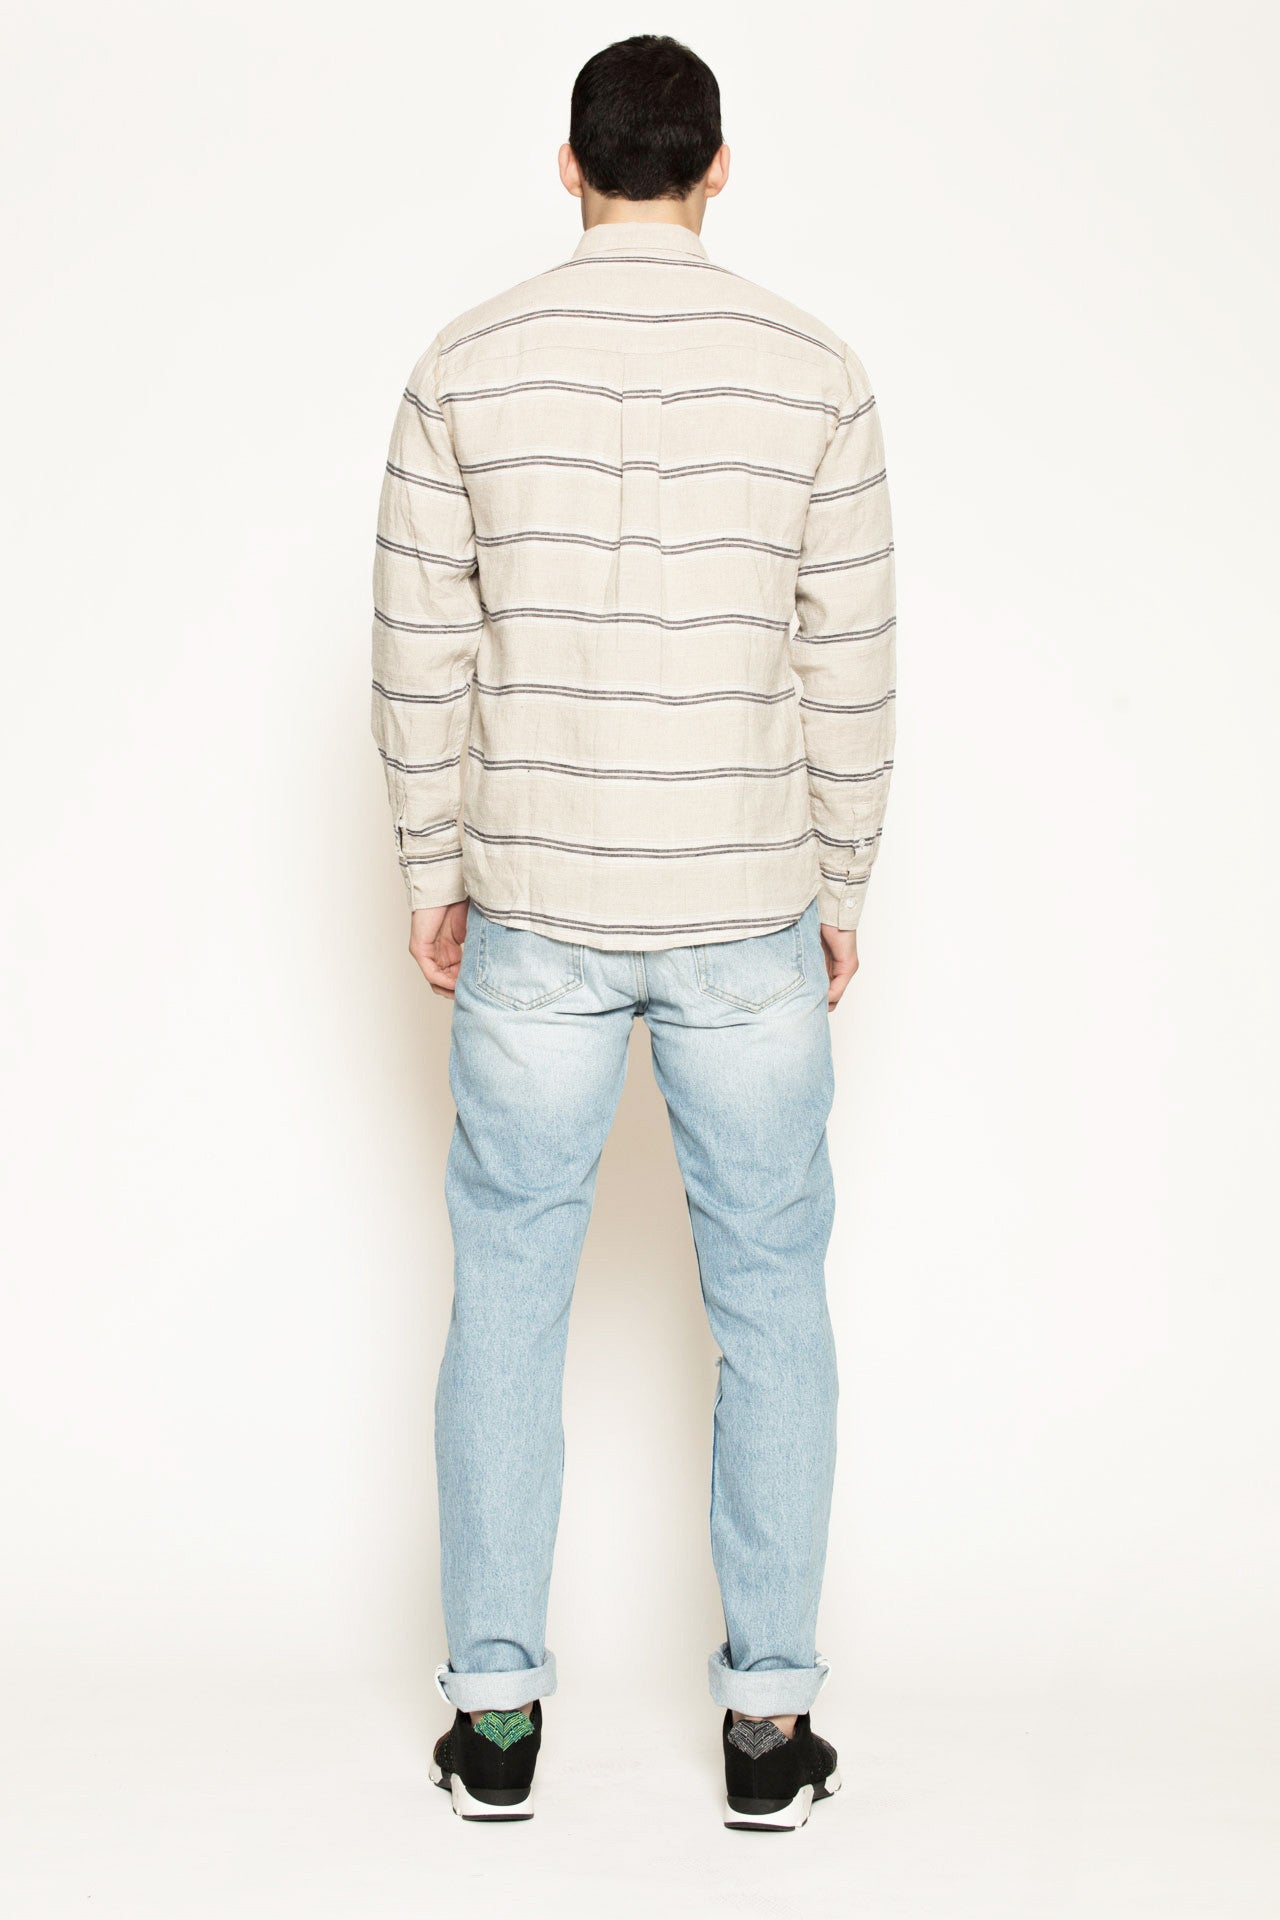 Logan Shirt with Pockets in Beige w/ Navy Stripes